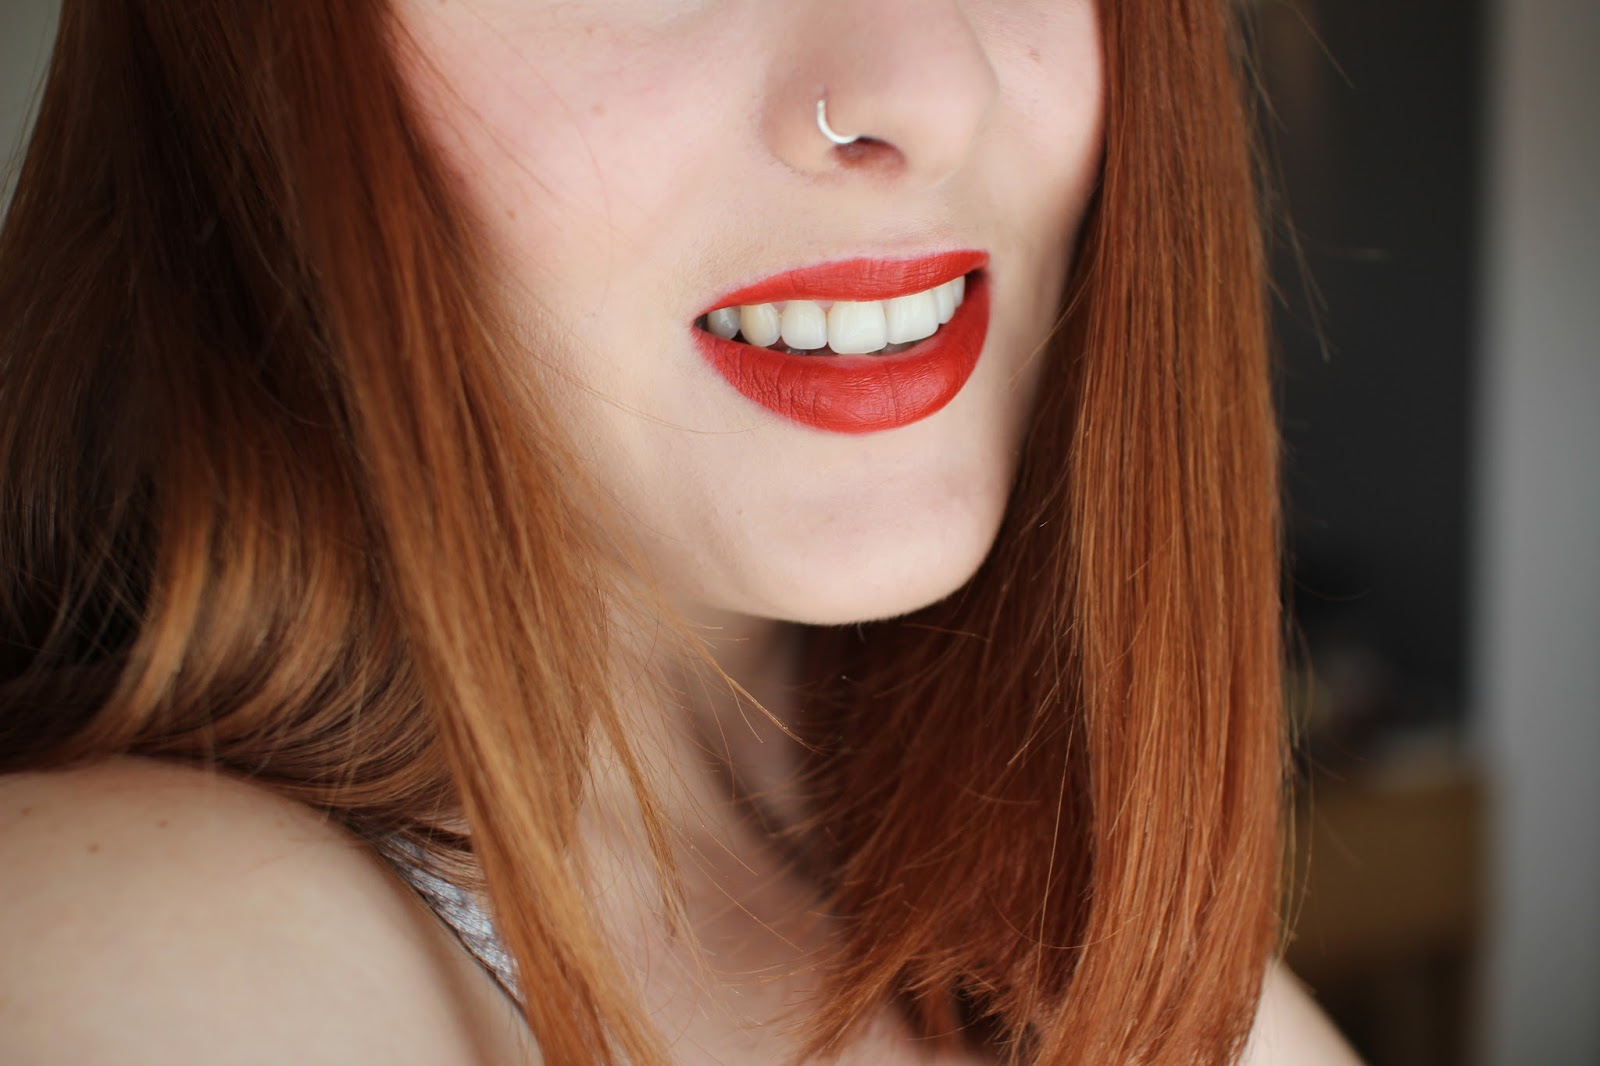 Mac Chili Lipstick Review Amp Swatches Zoey Olivia